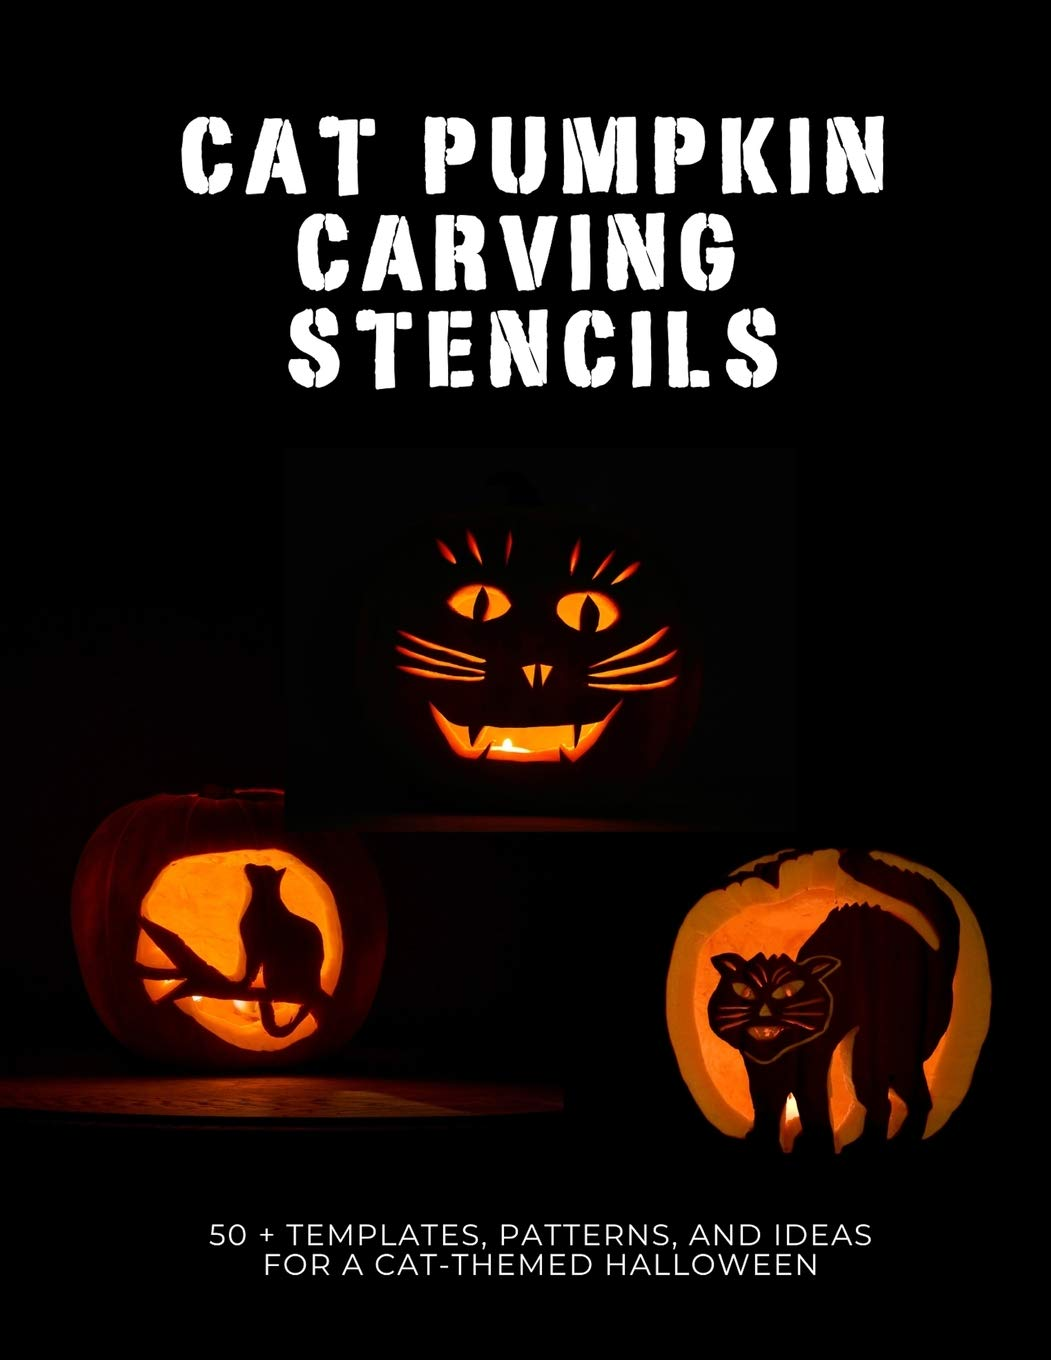 Cat Pumpkin Carving Stencils 50 Templates Patterns And Ideas For A Cat Themed Halloween Smith Jr Mr Bob Q 9798695331608 Amazon Com Books